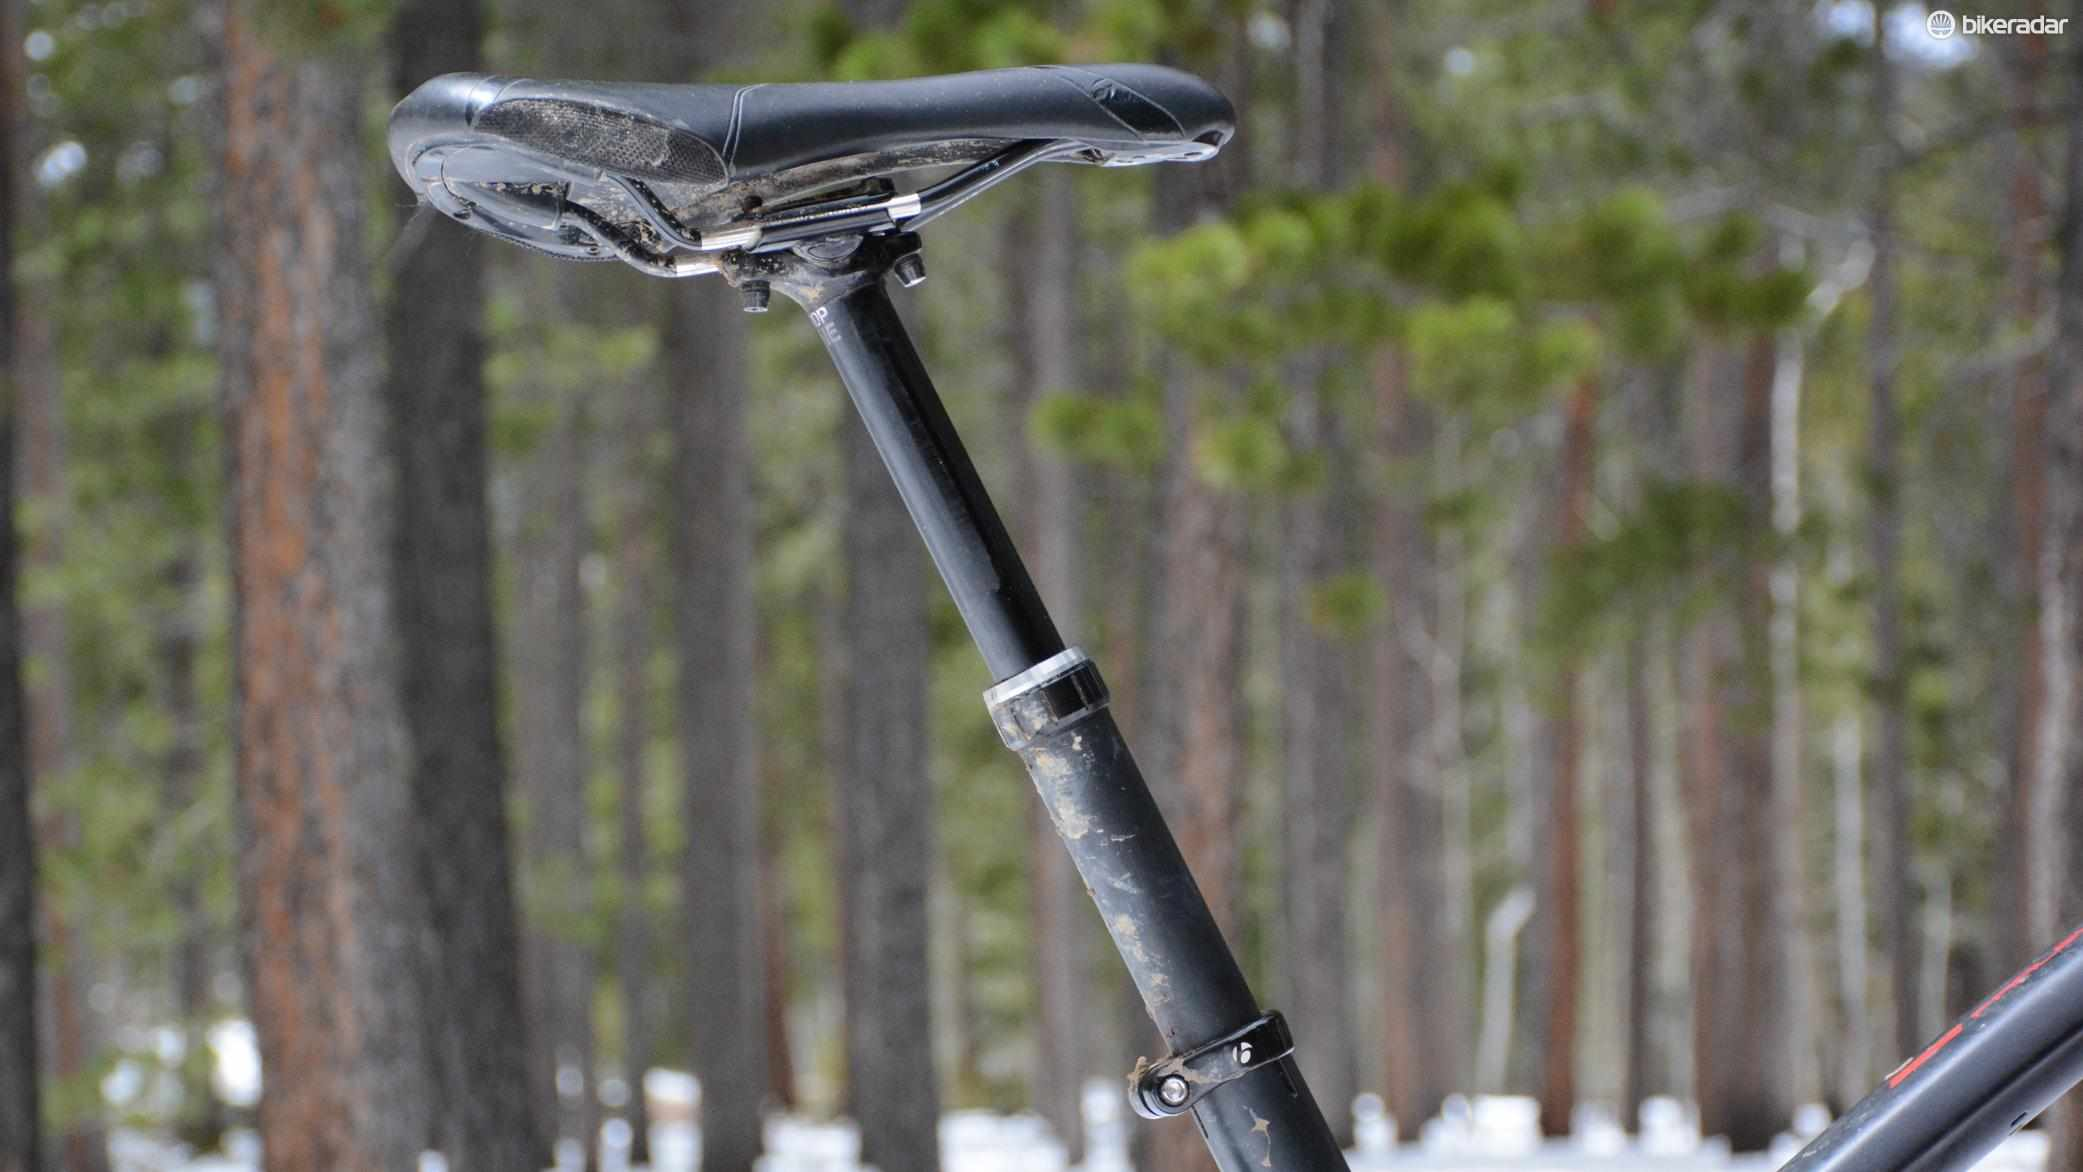 Bontrager's Drop Line dropper post is the first from Trek's component company